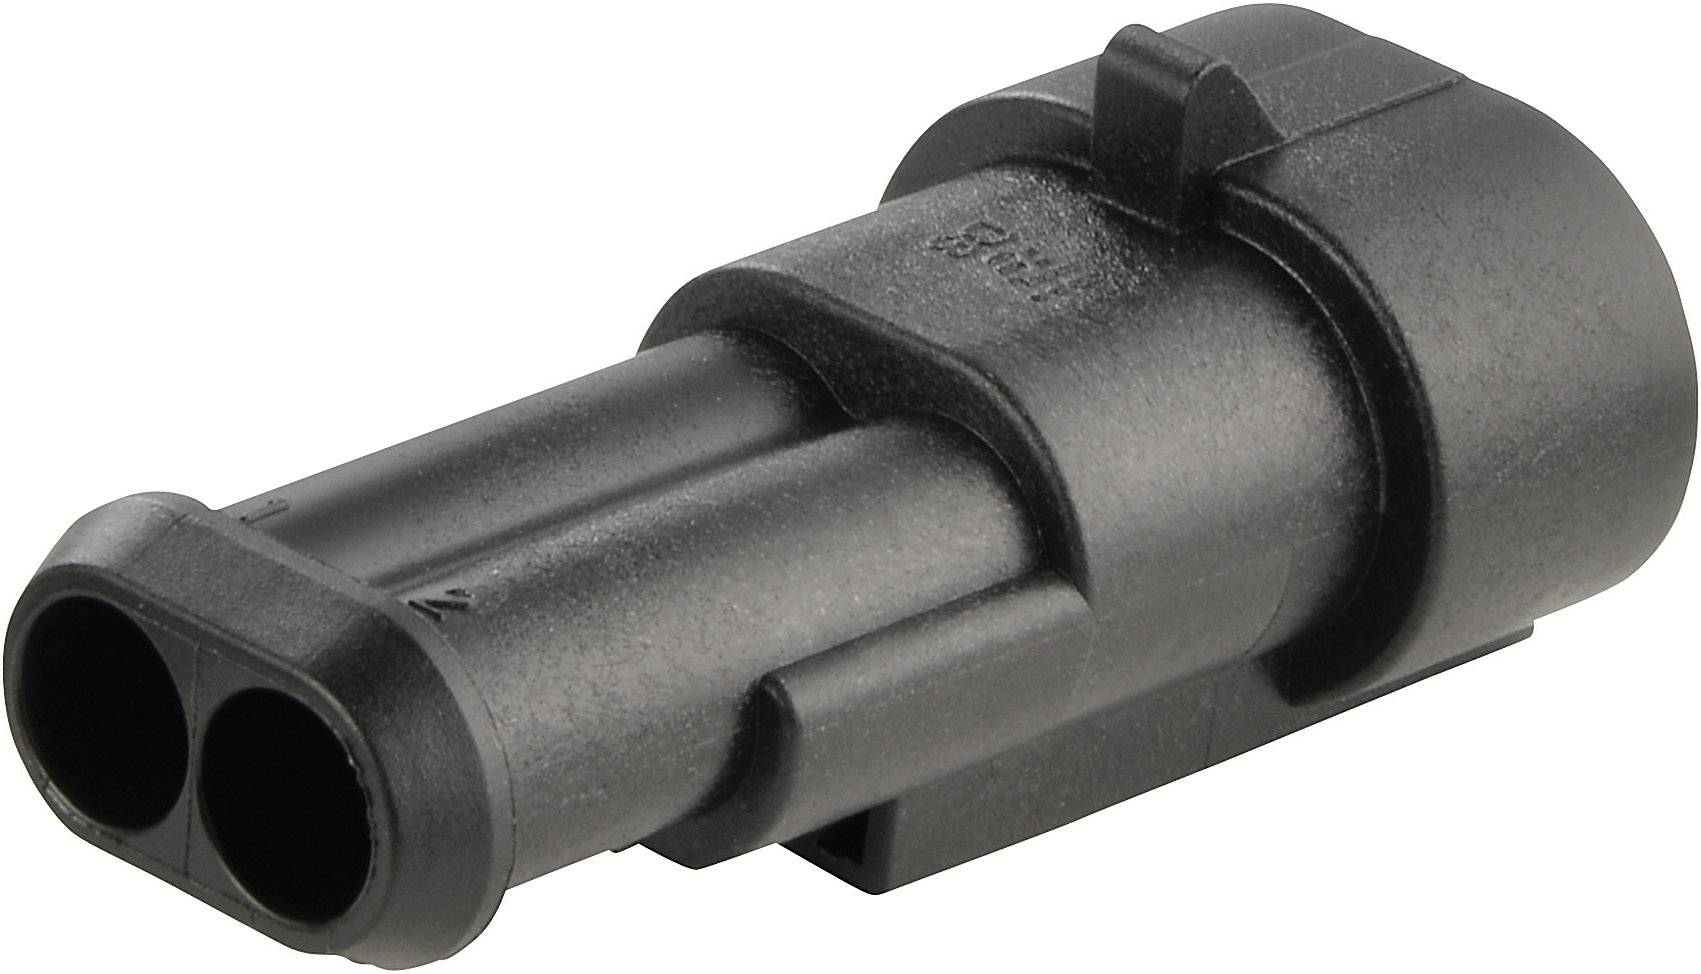 Zástrčkový konektor na kábel TE Connectivity 282104-1 282104-1, 42 mm, pólů 2, rozteč 6 mm, 1 ks